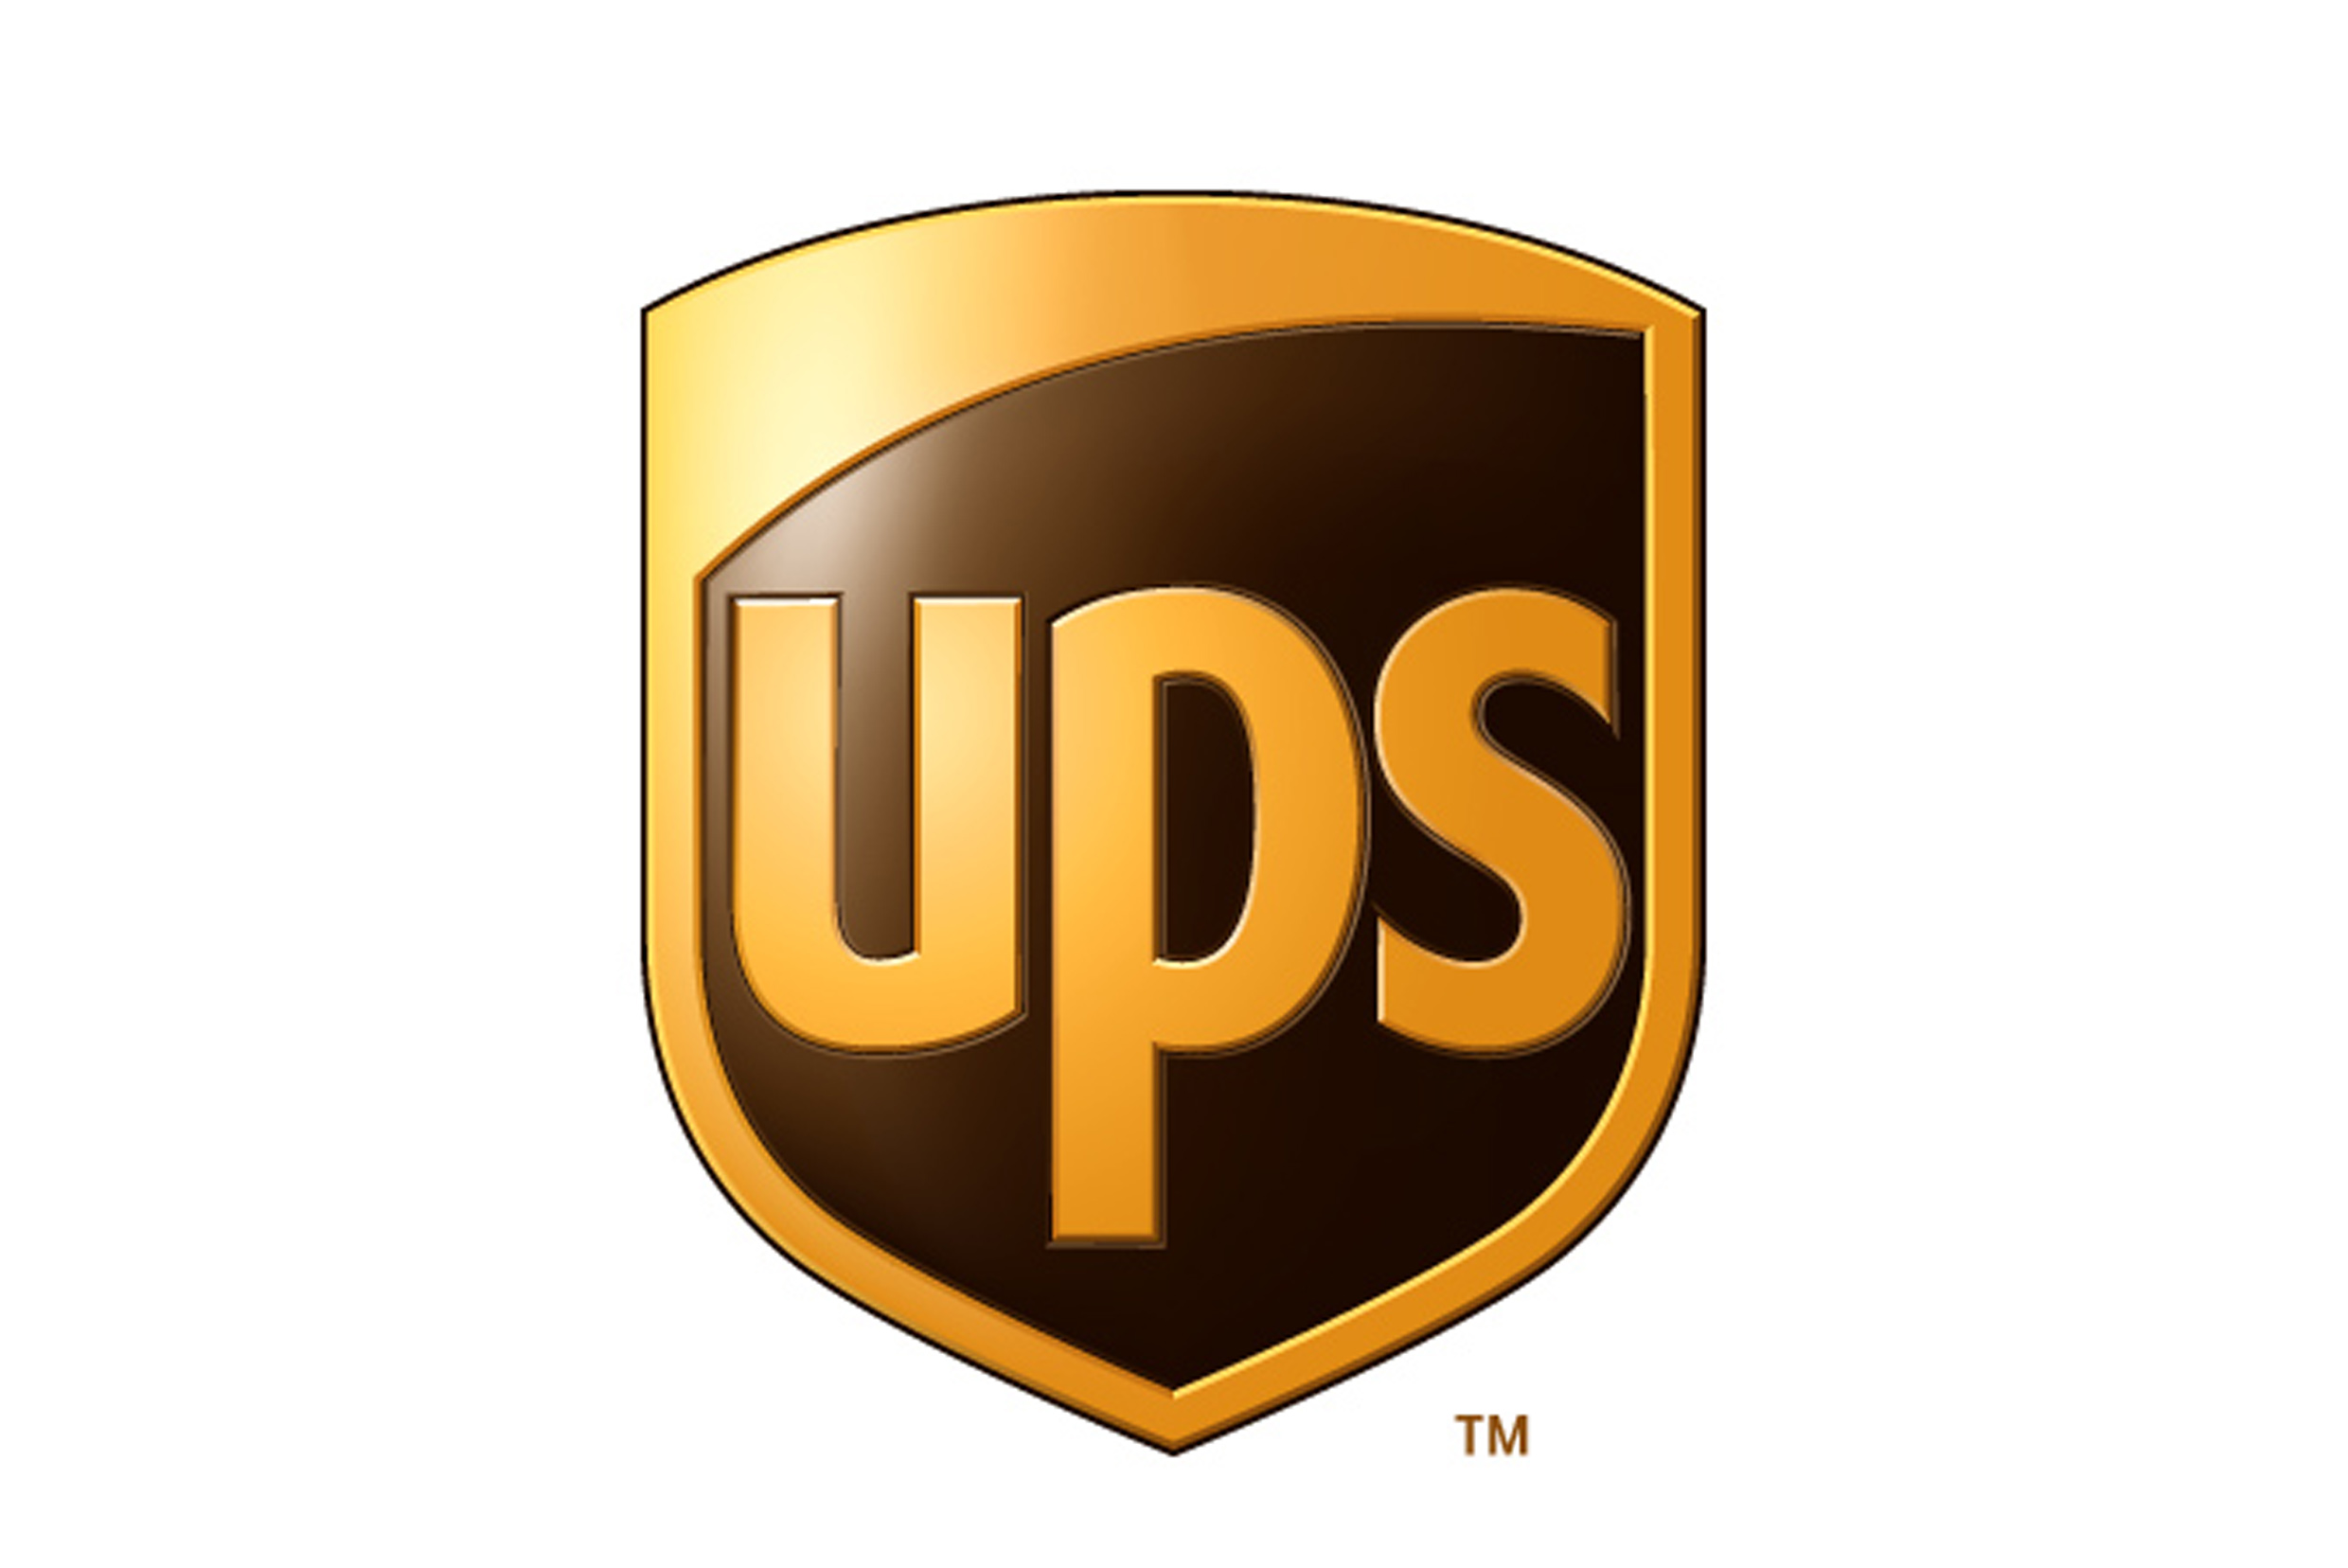 ups-customer-service-contact-phone-number.jpg